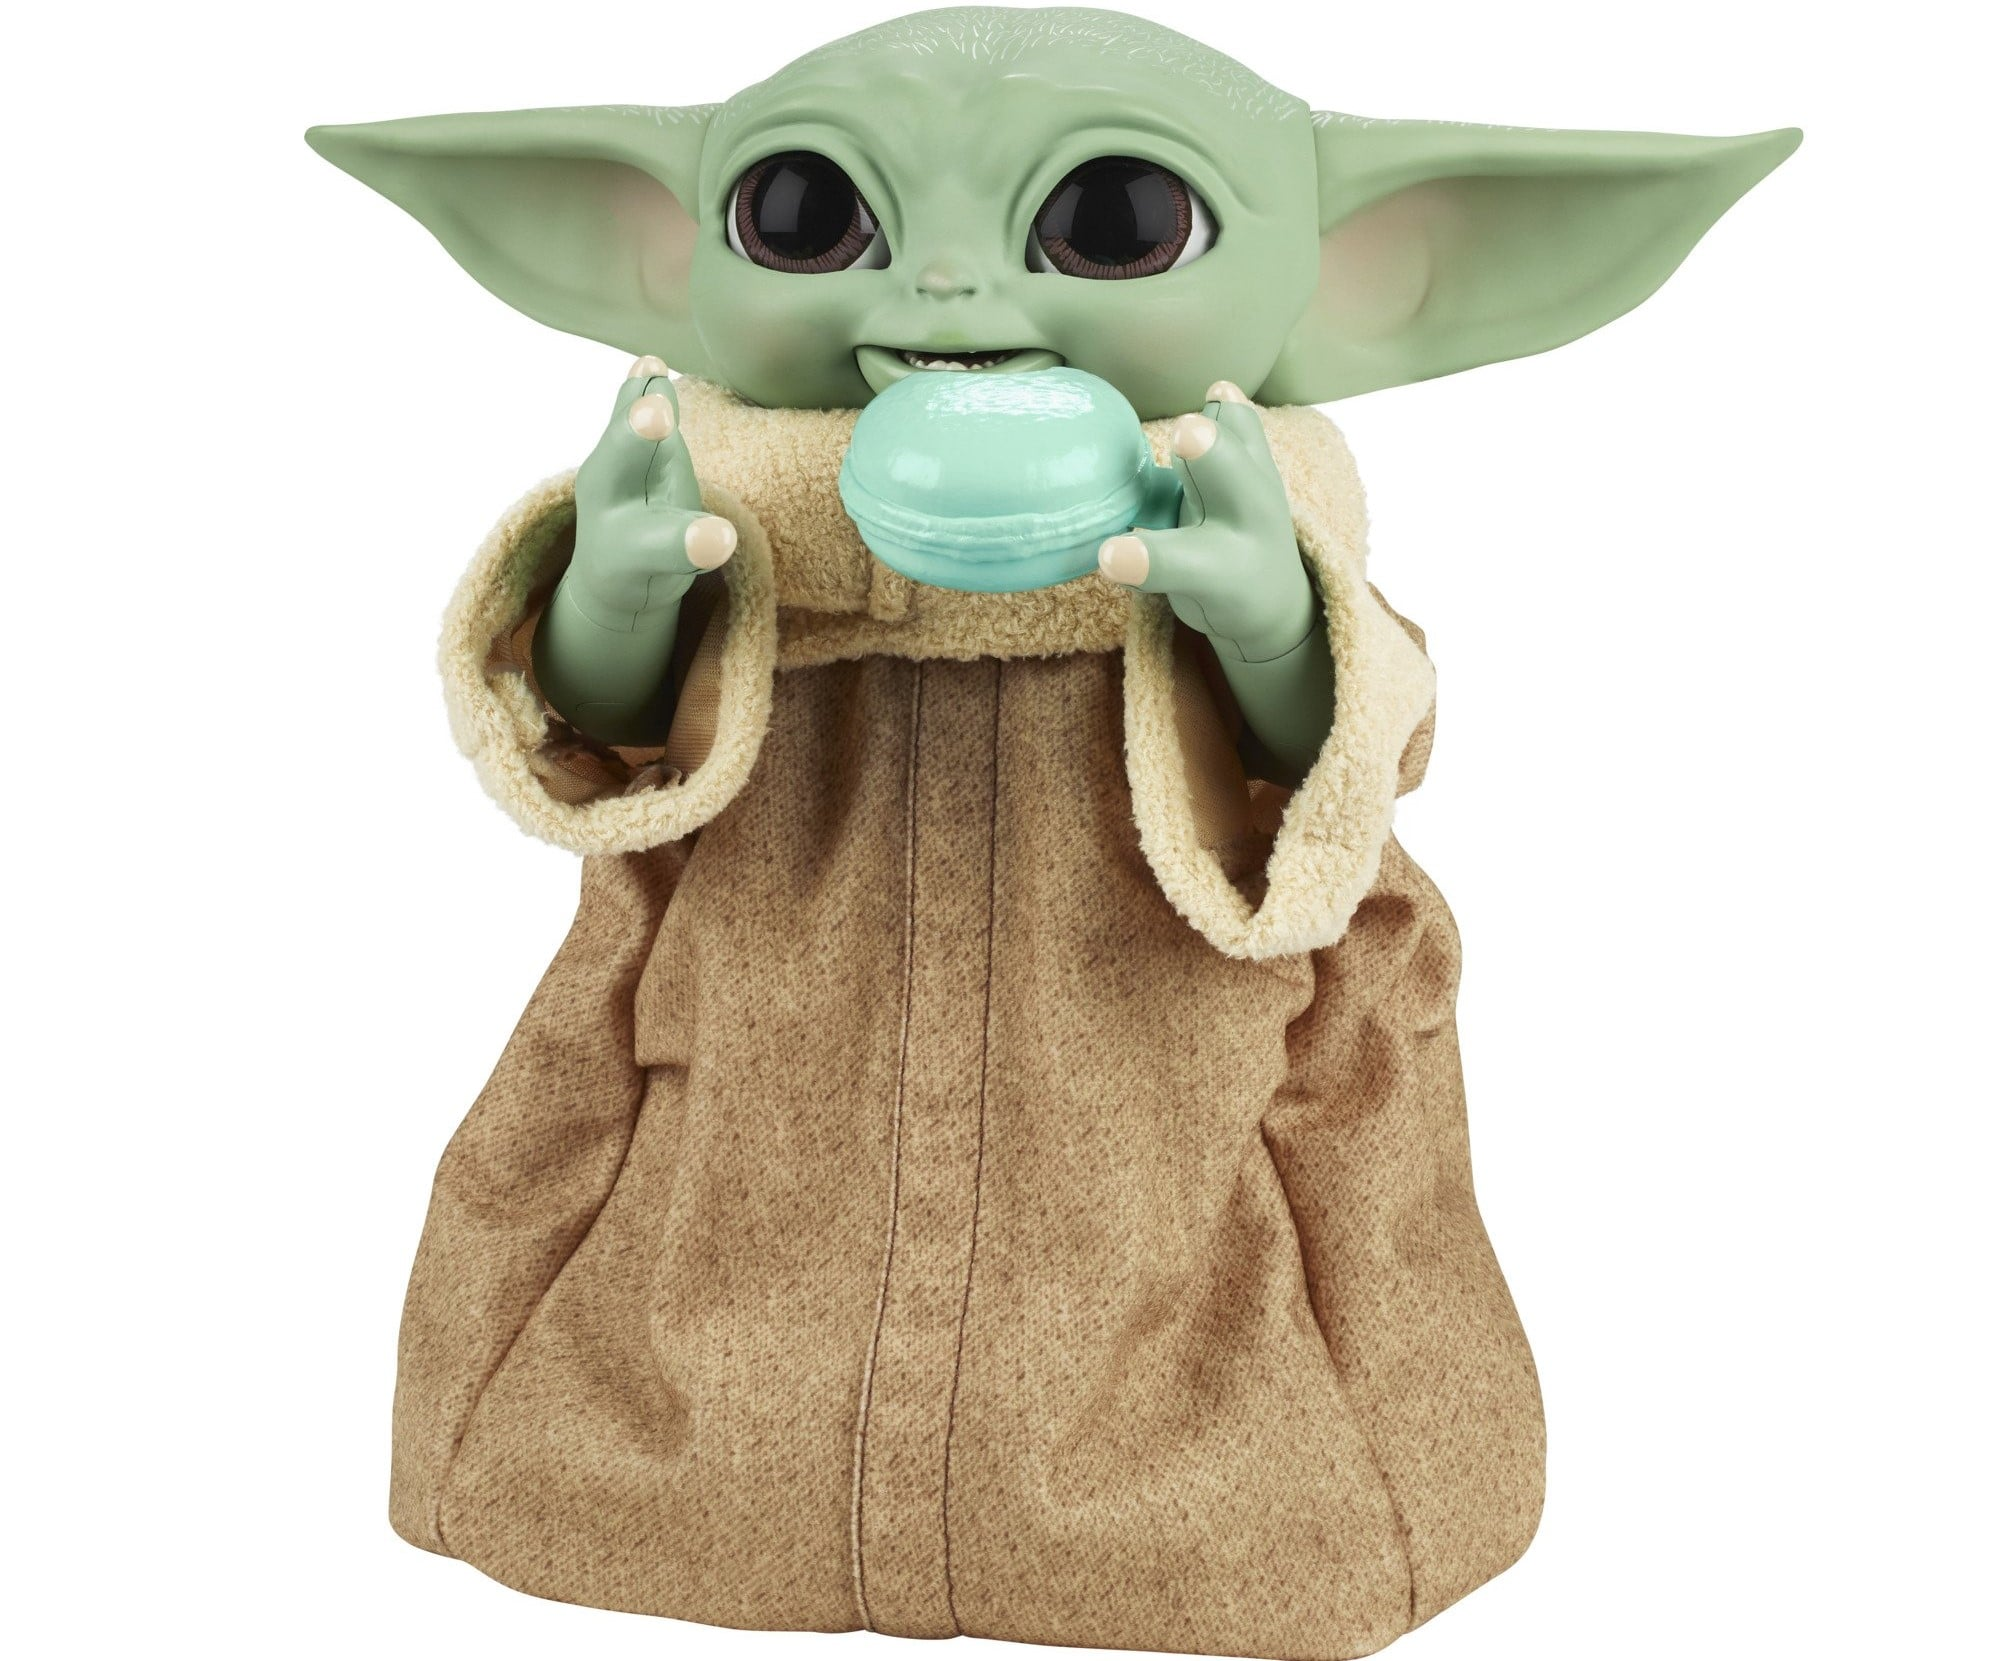 Hasbro's new Baby Yoda animatronic toy is inspired by Grogu's love for snacking 18